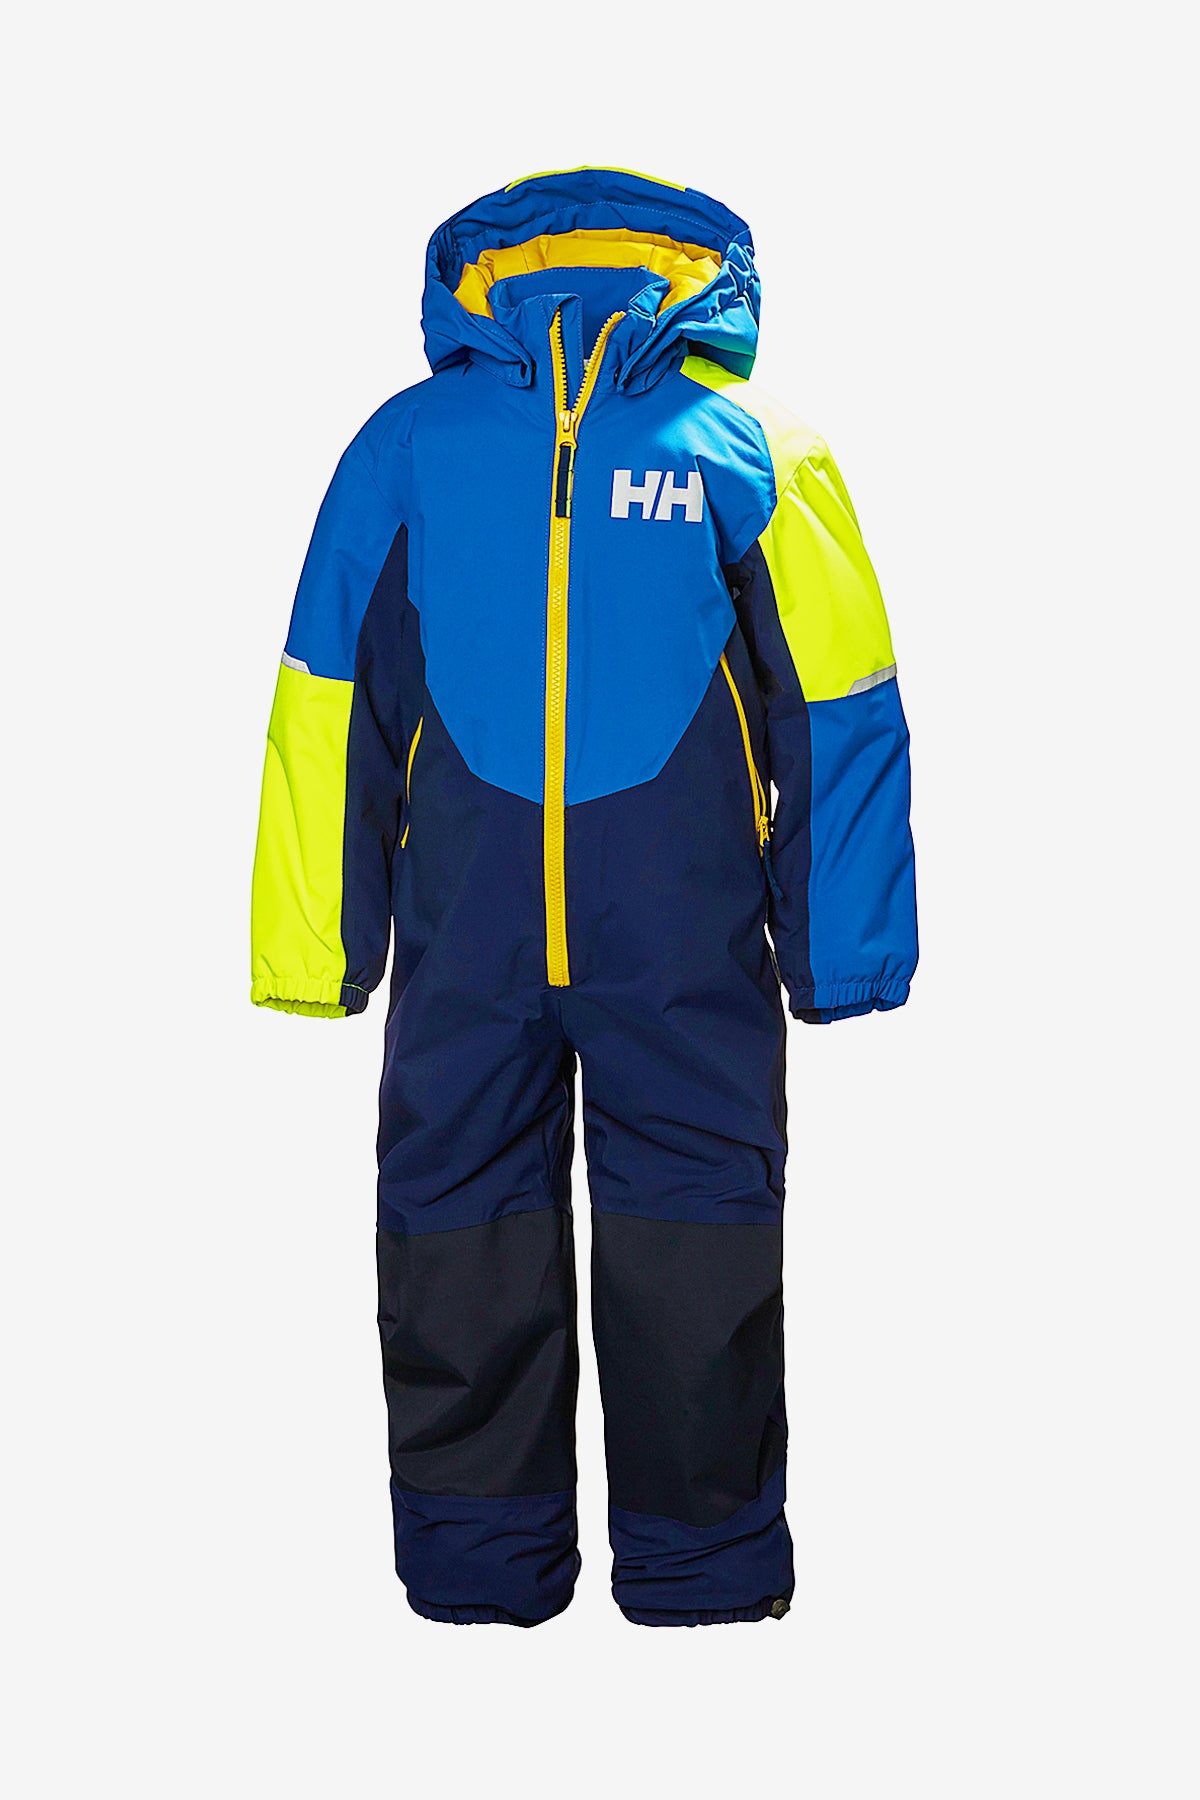 45d2a4c613 Helly Hansen Rider Insulated Skisuit - Olympian Blue - Mini Ruby